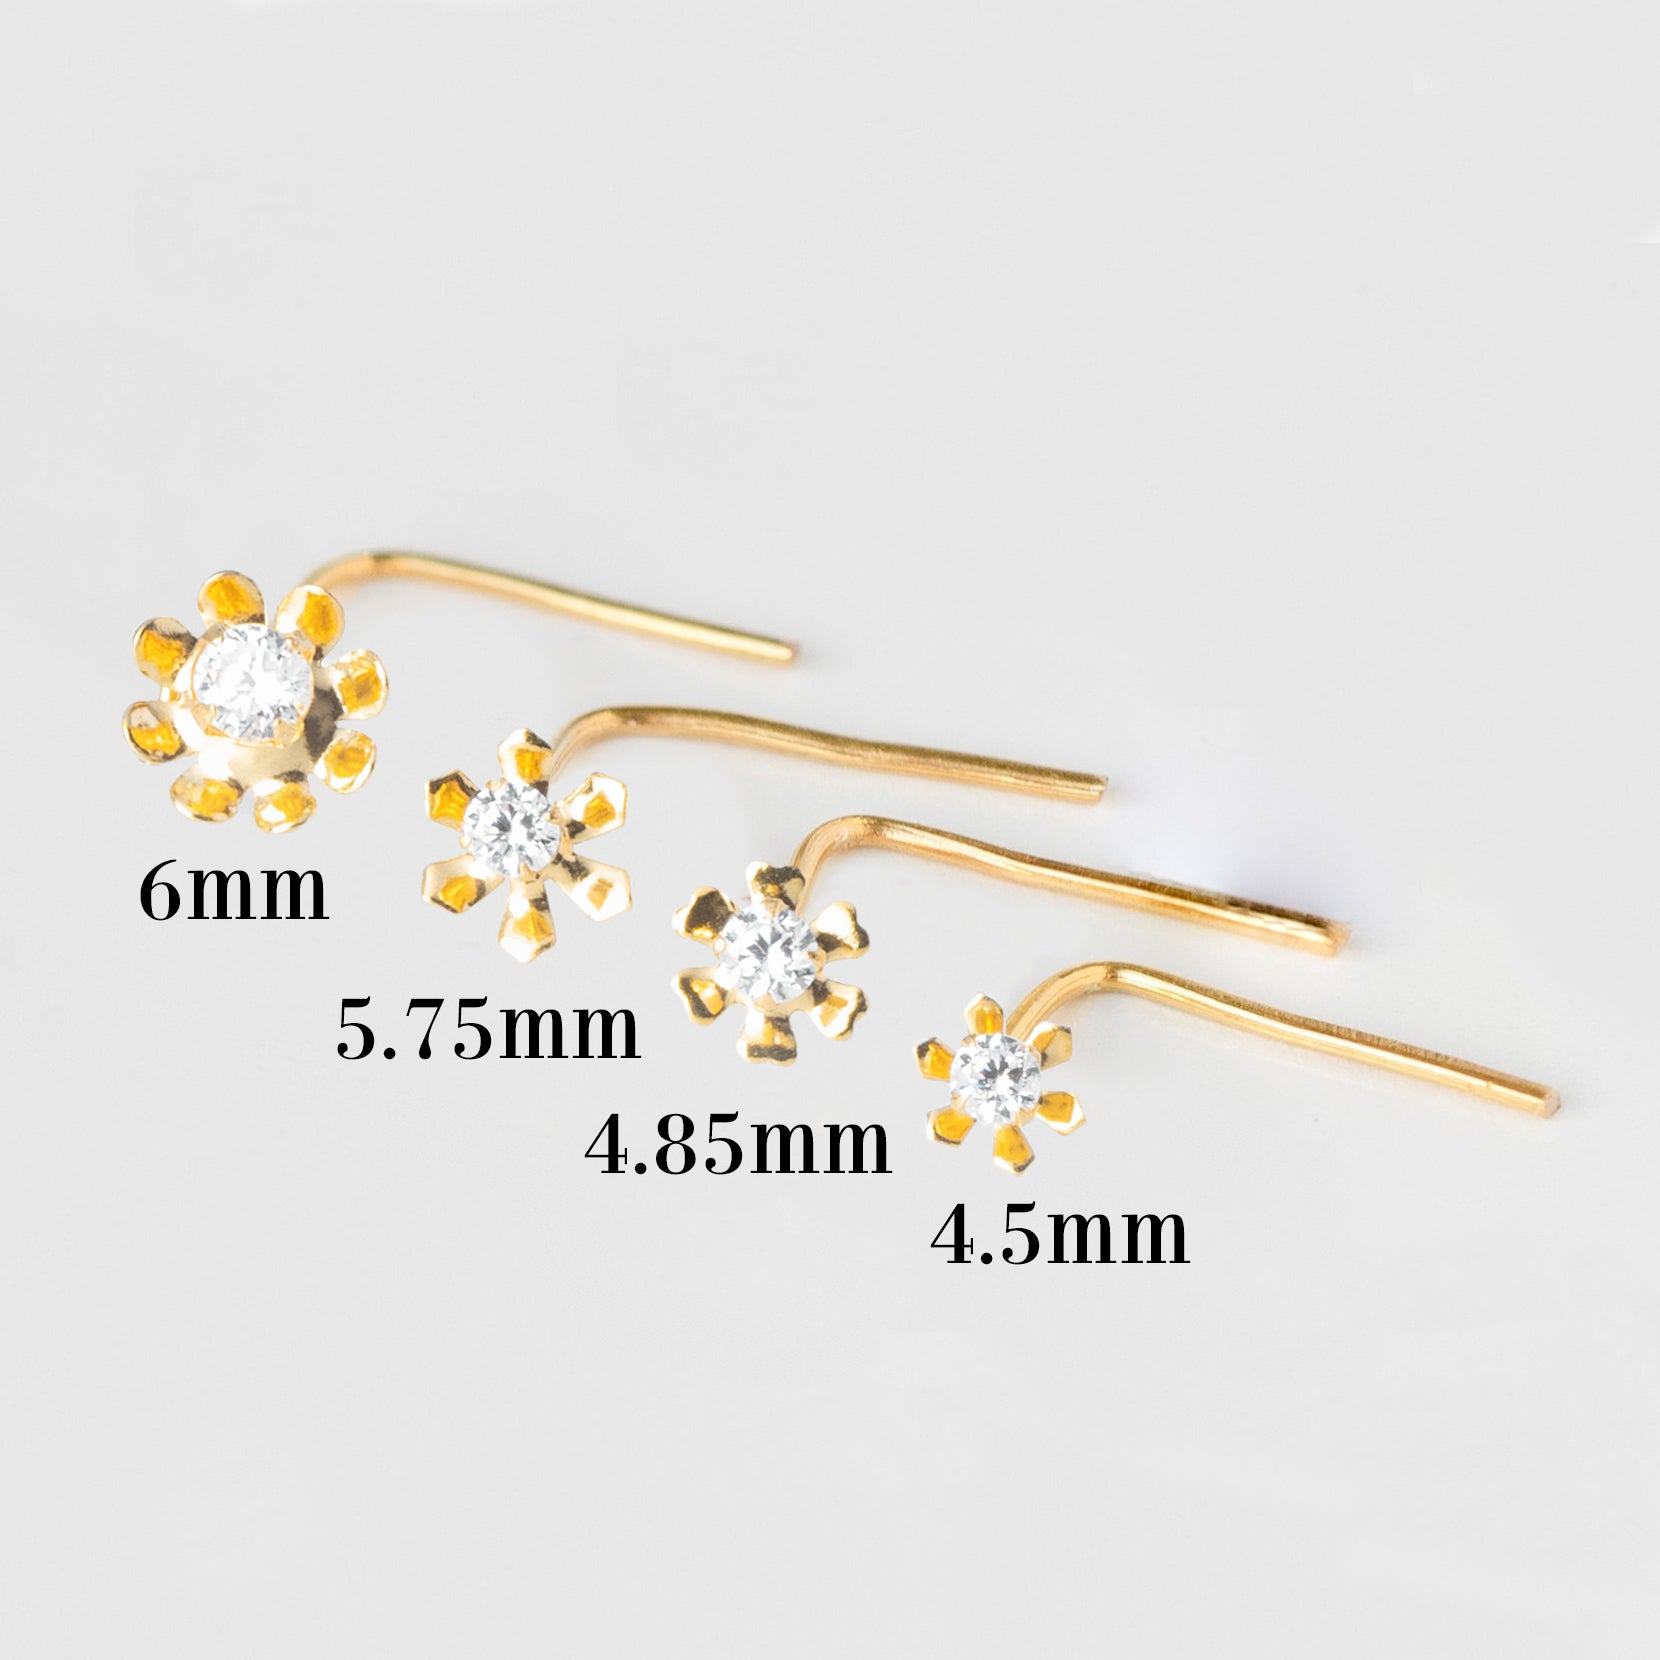 18ct Yellow Gold L Shape Back Nose Stud set with Cubic Zirconia in a Flower Design (4.5mm - 6mm) NIP-4-080